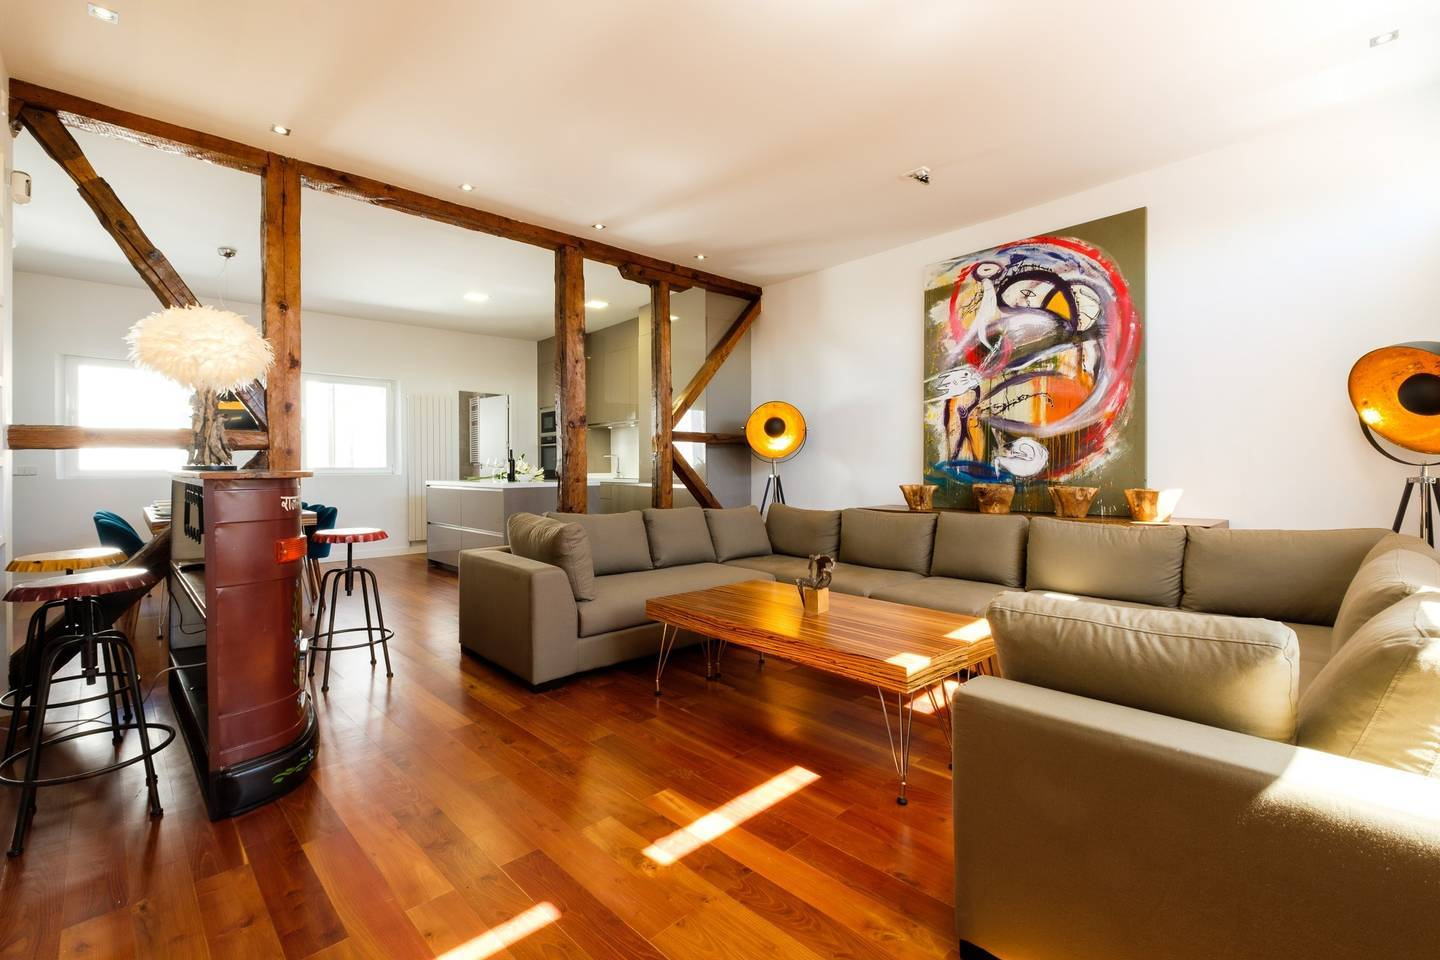 Four-bed penthouse in Chueca